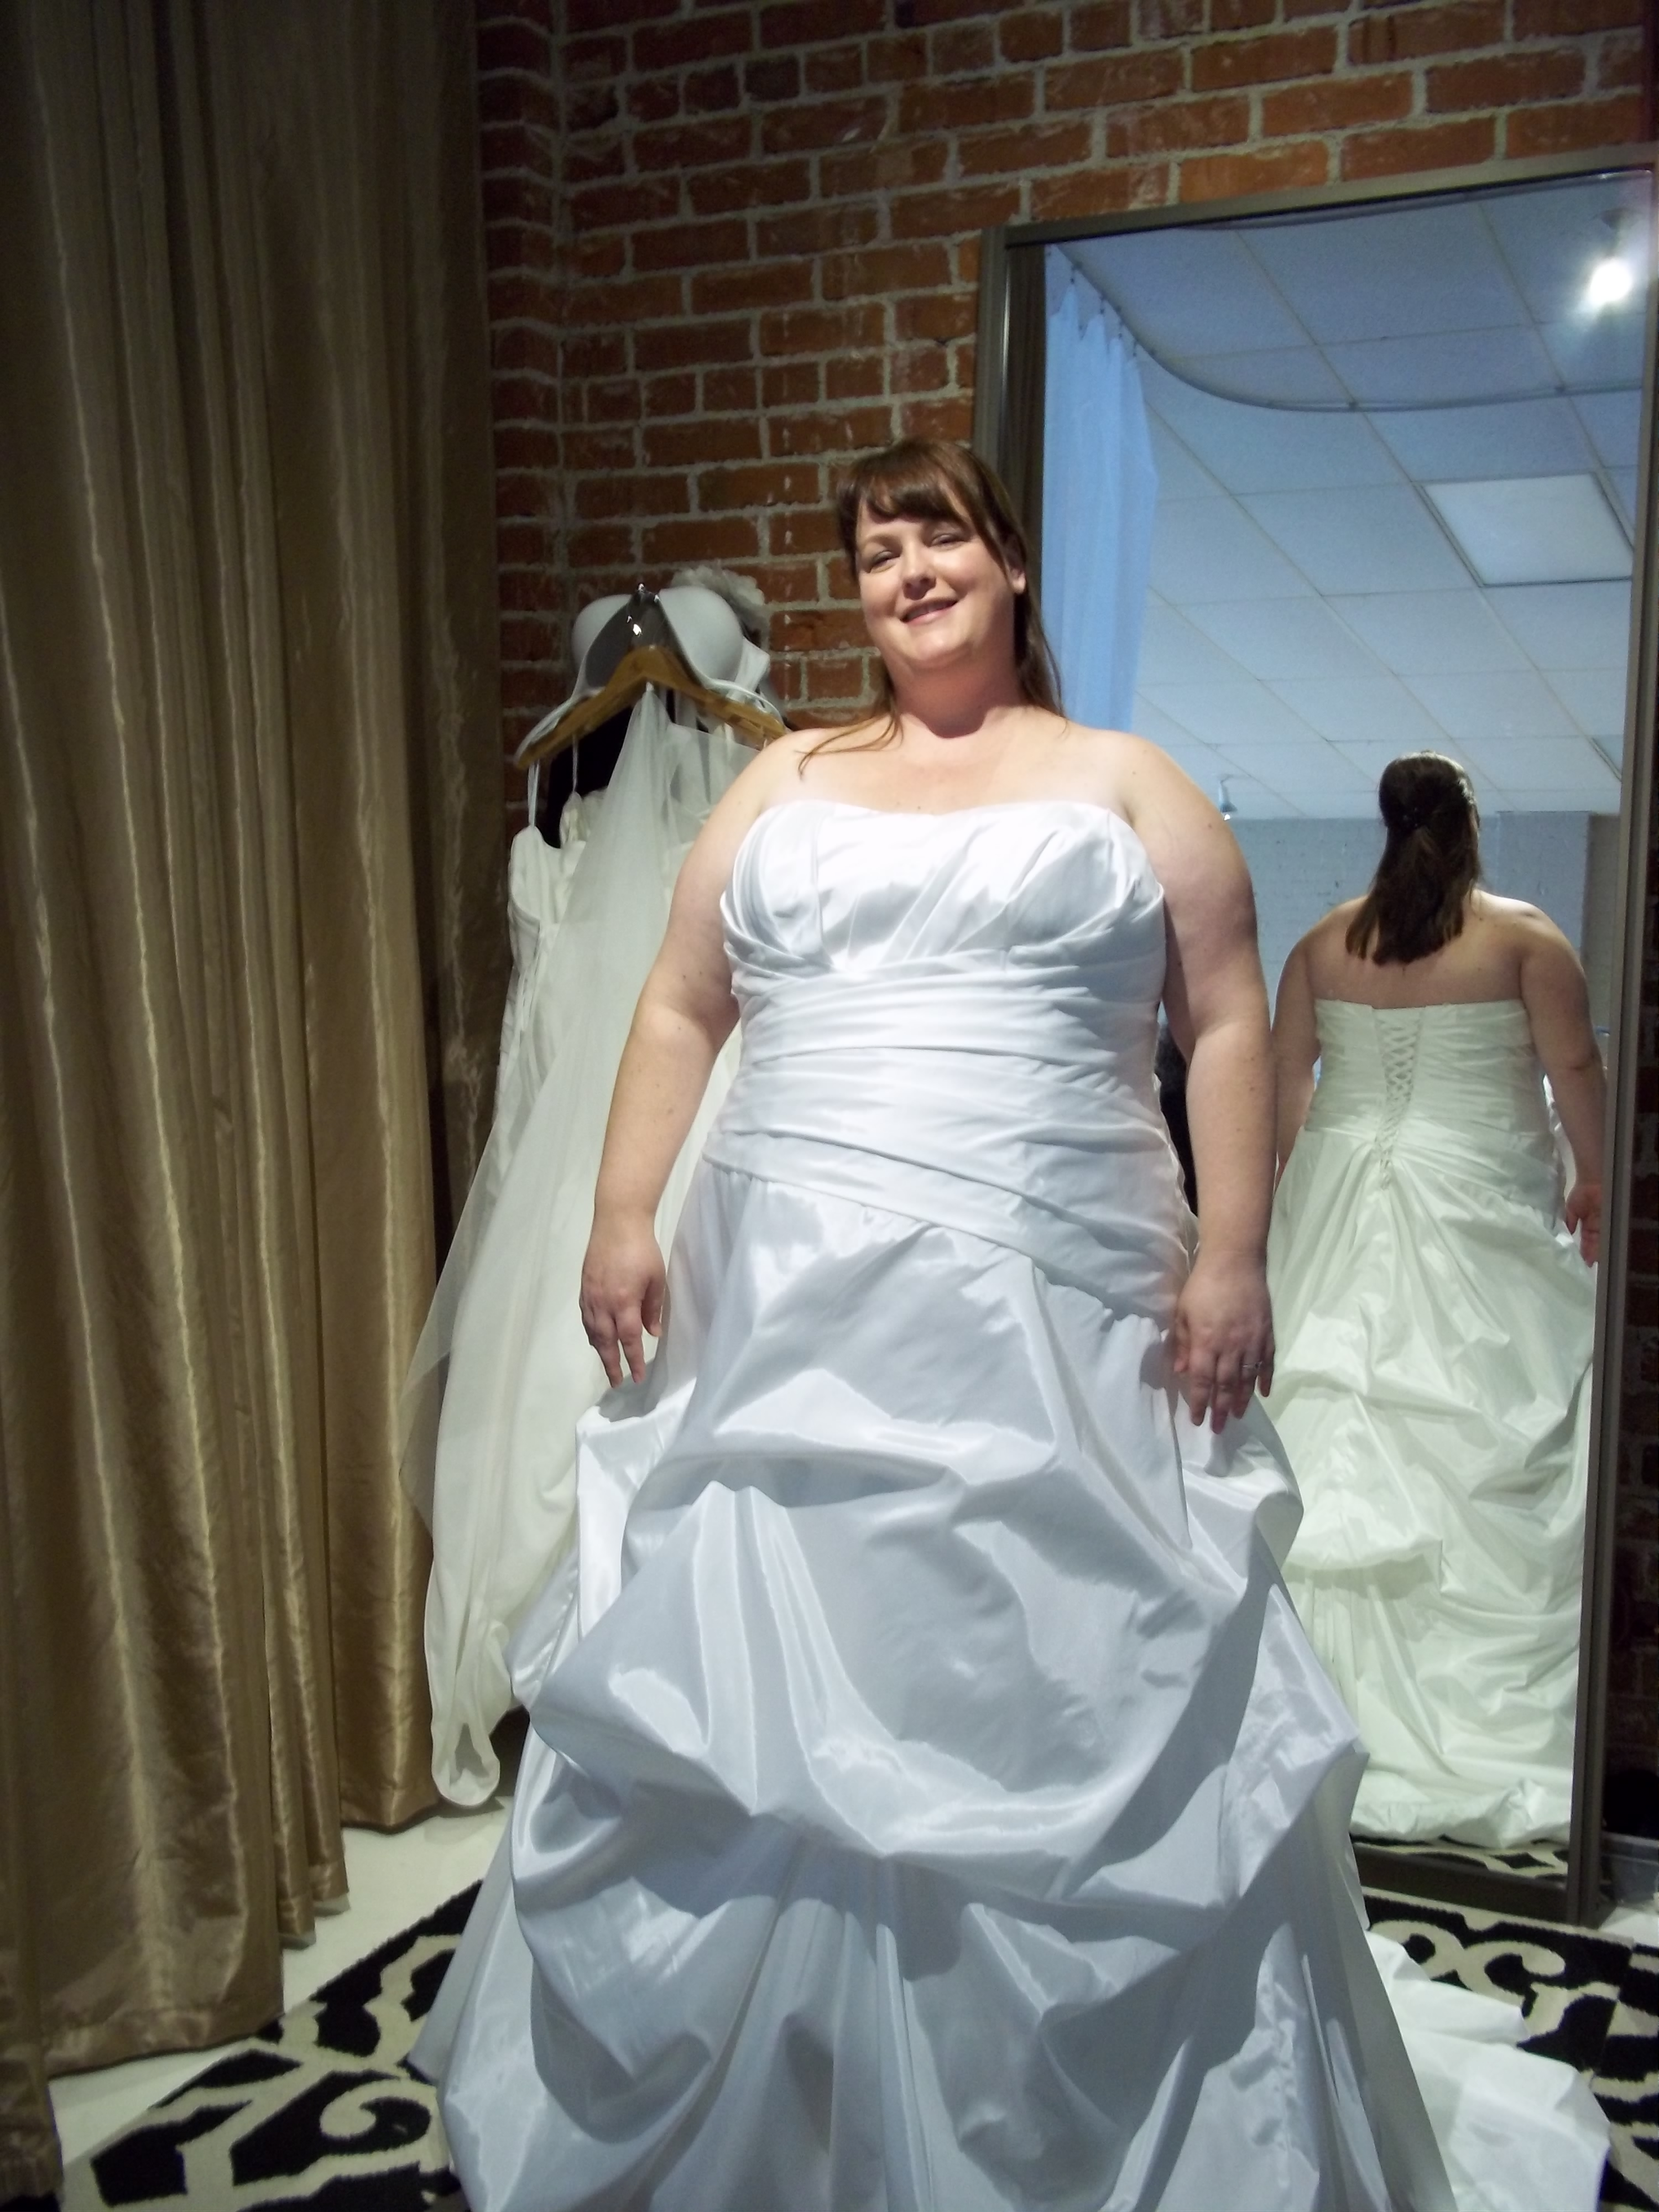 Show us your plus size wedding gown! - Page 2 — The Knot